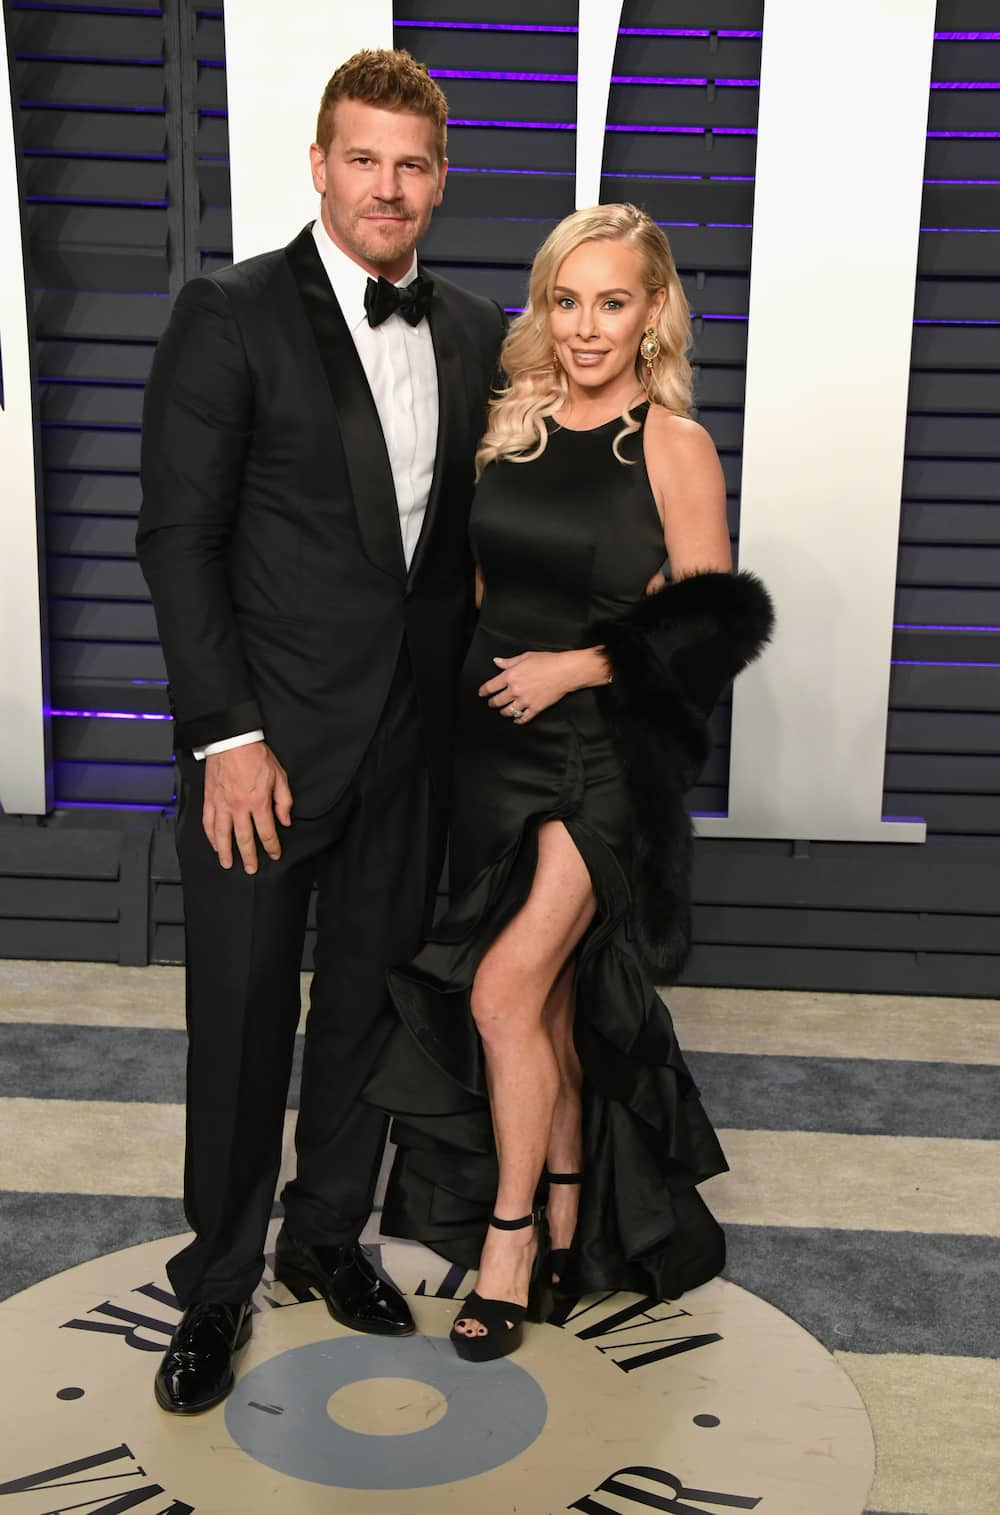 Who is David Boreanaz married to